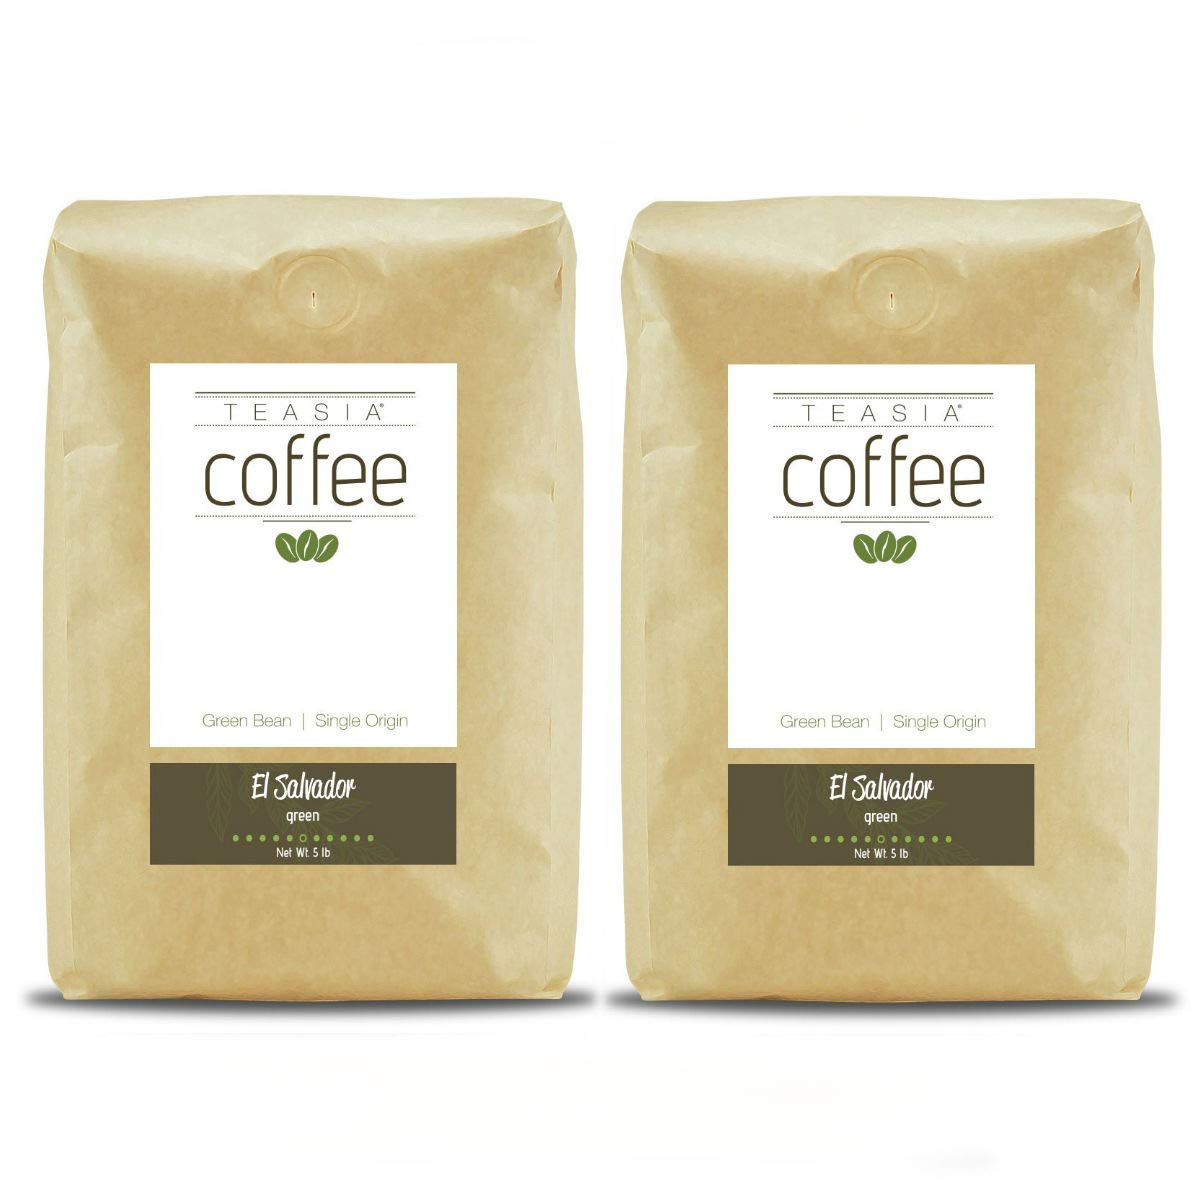 Teasia Coffee, El Salvador, Single Origin Fair Trade, Green Unroasted Whole Coffee Beans, 5-Pound Bag (2-Pack)